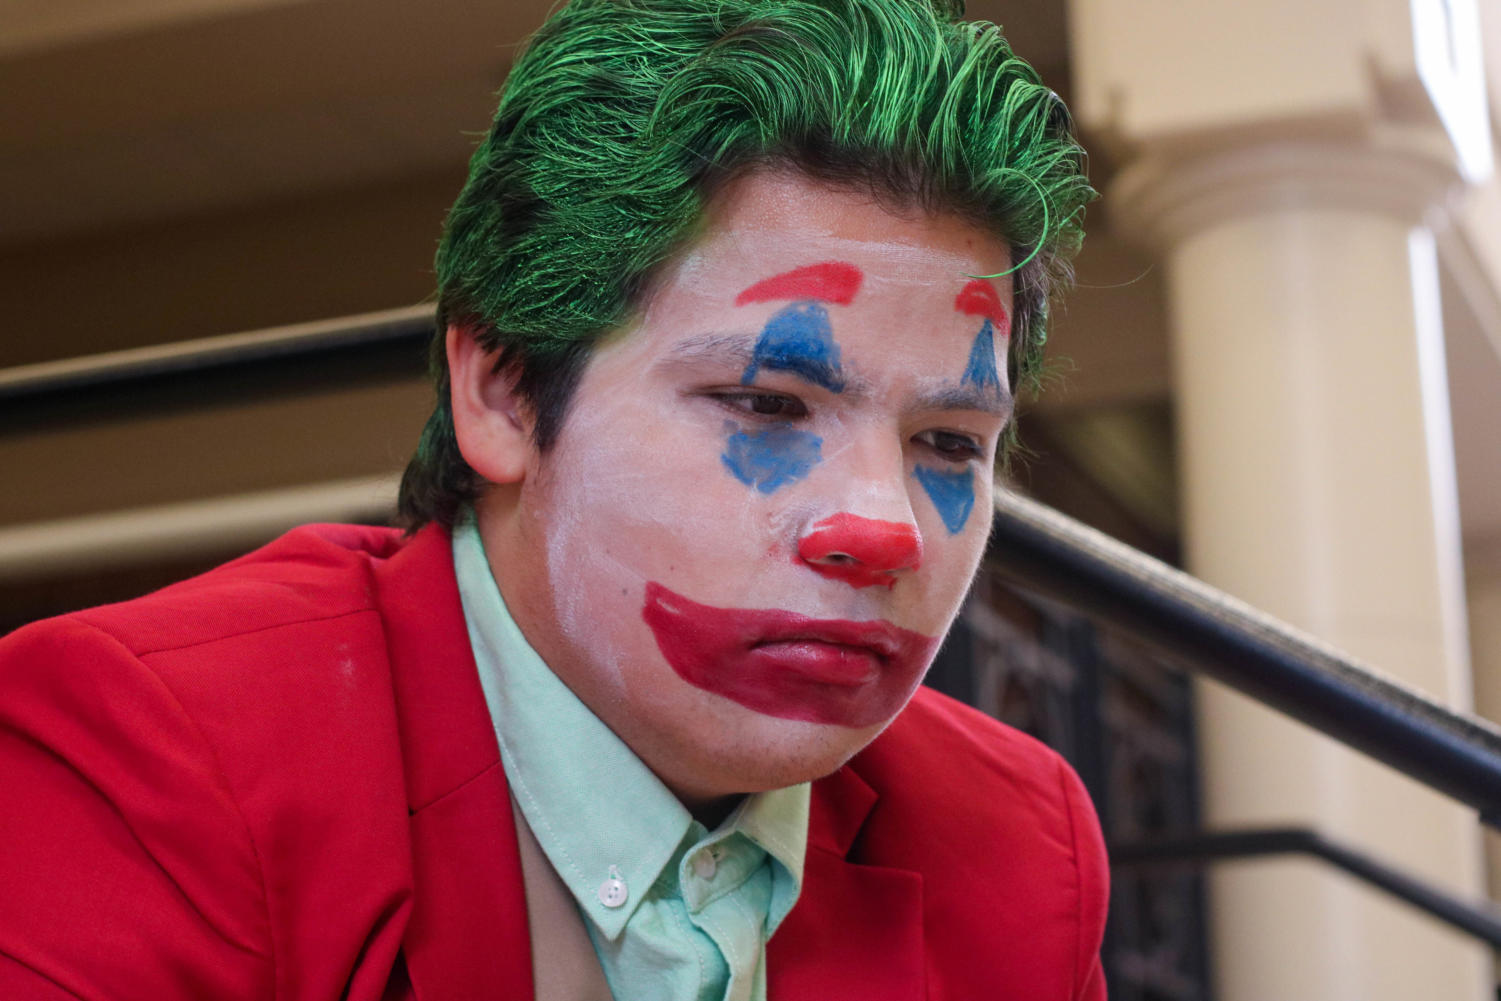 "Senior Erland Merwin poses in his joker costume on the steps to the Auditorium. ""We live in a society,"" Merwin said, quoting one of the Joker's most famous and meme-ified lines. In this column, writer Maddie Moats highlights the many reasons for which she claims the Halloween spirit has died."